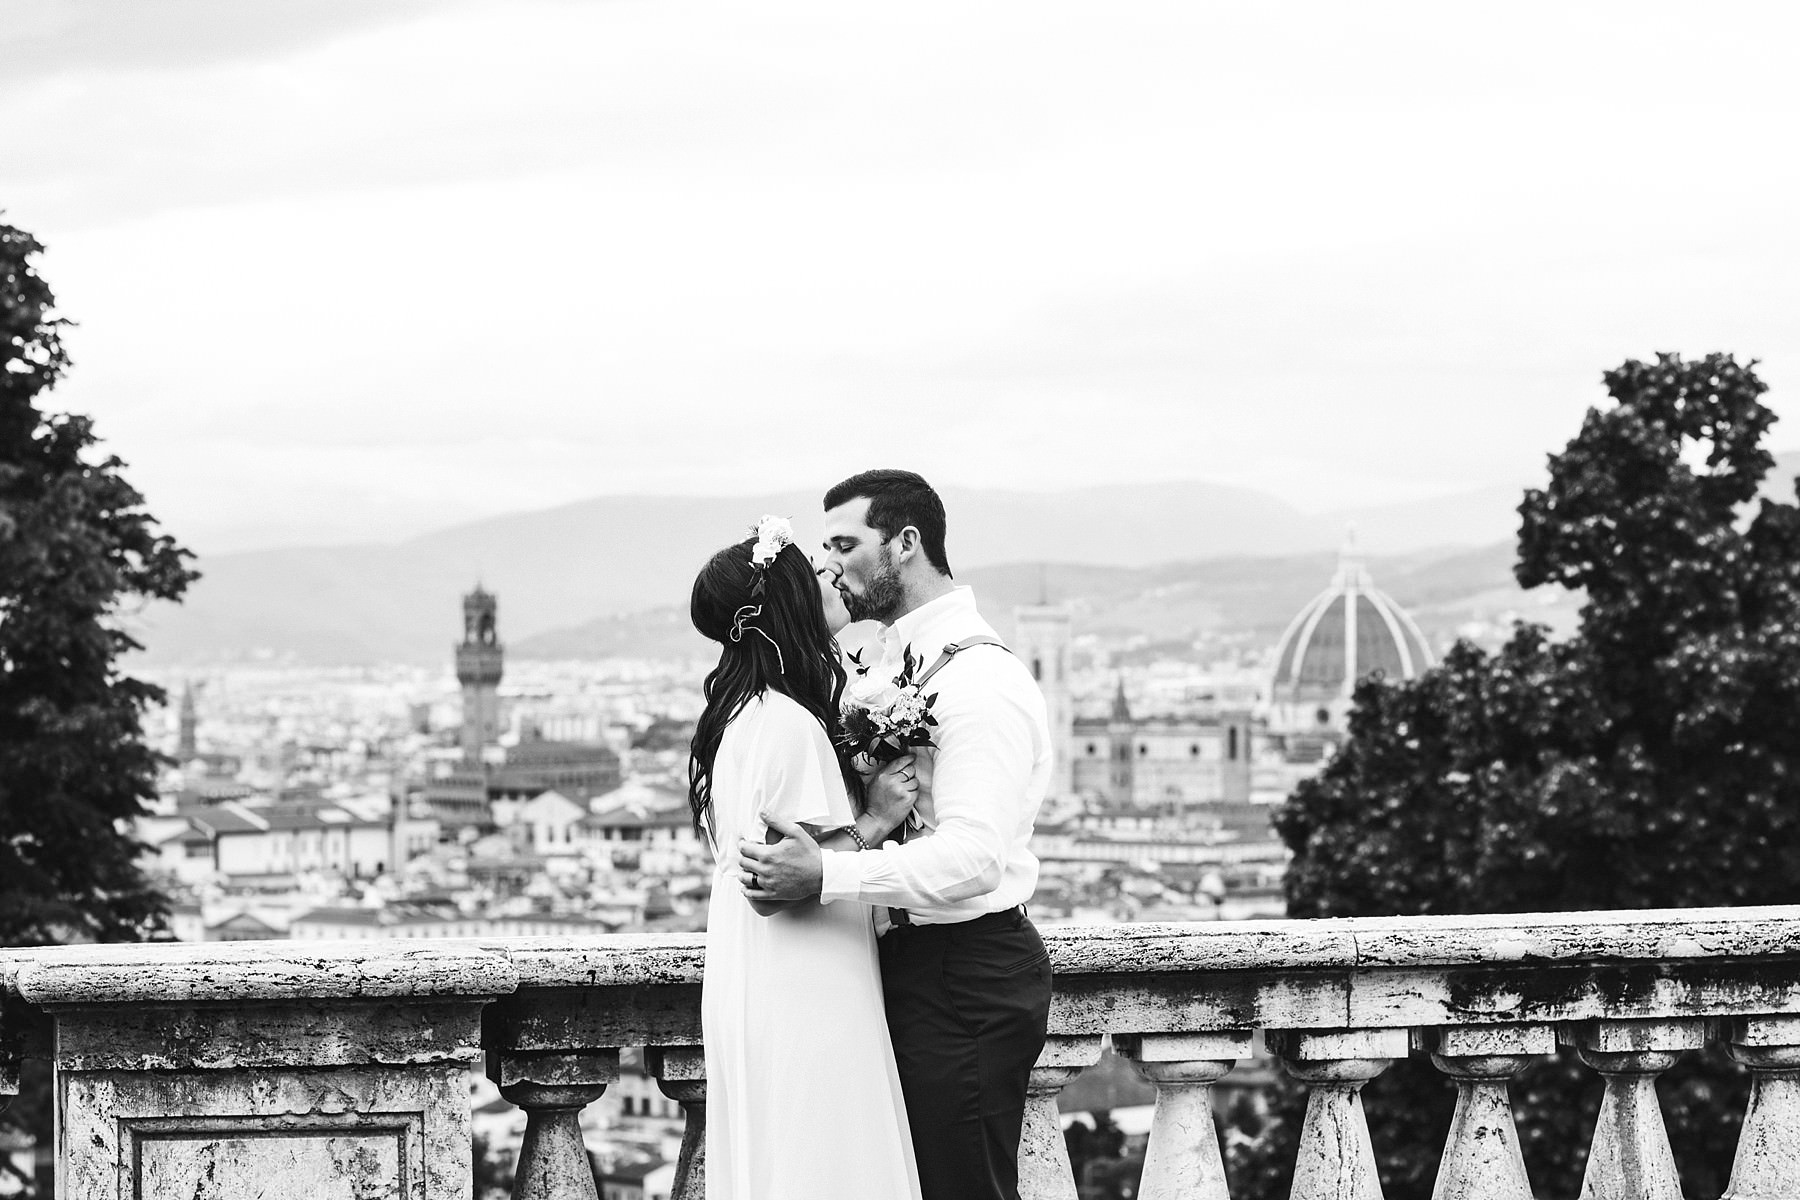 Sweet elopement in Italy to intimately seal your love